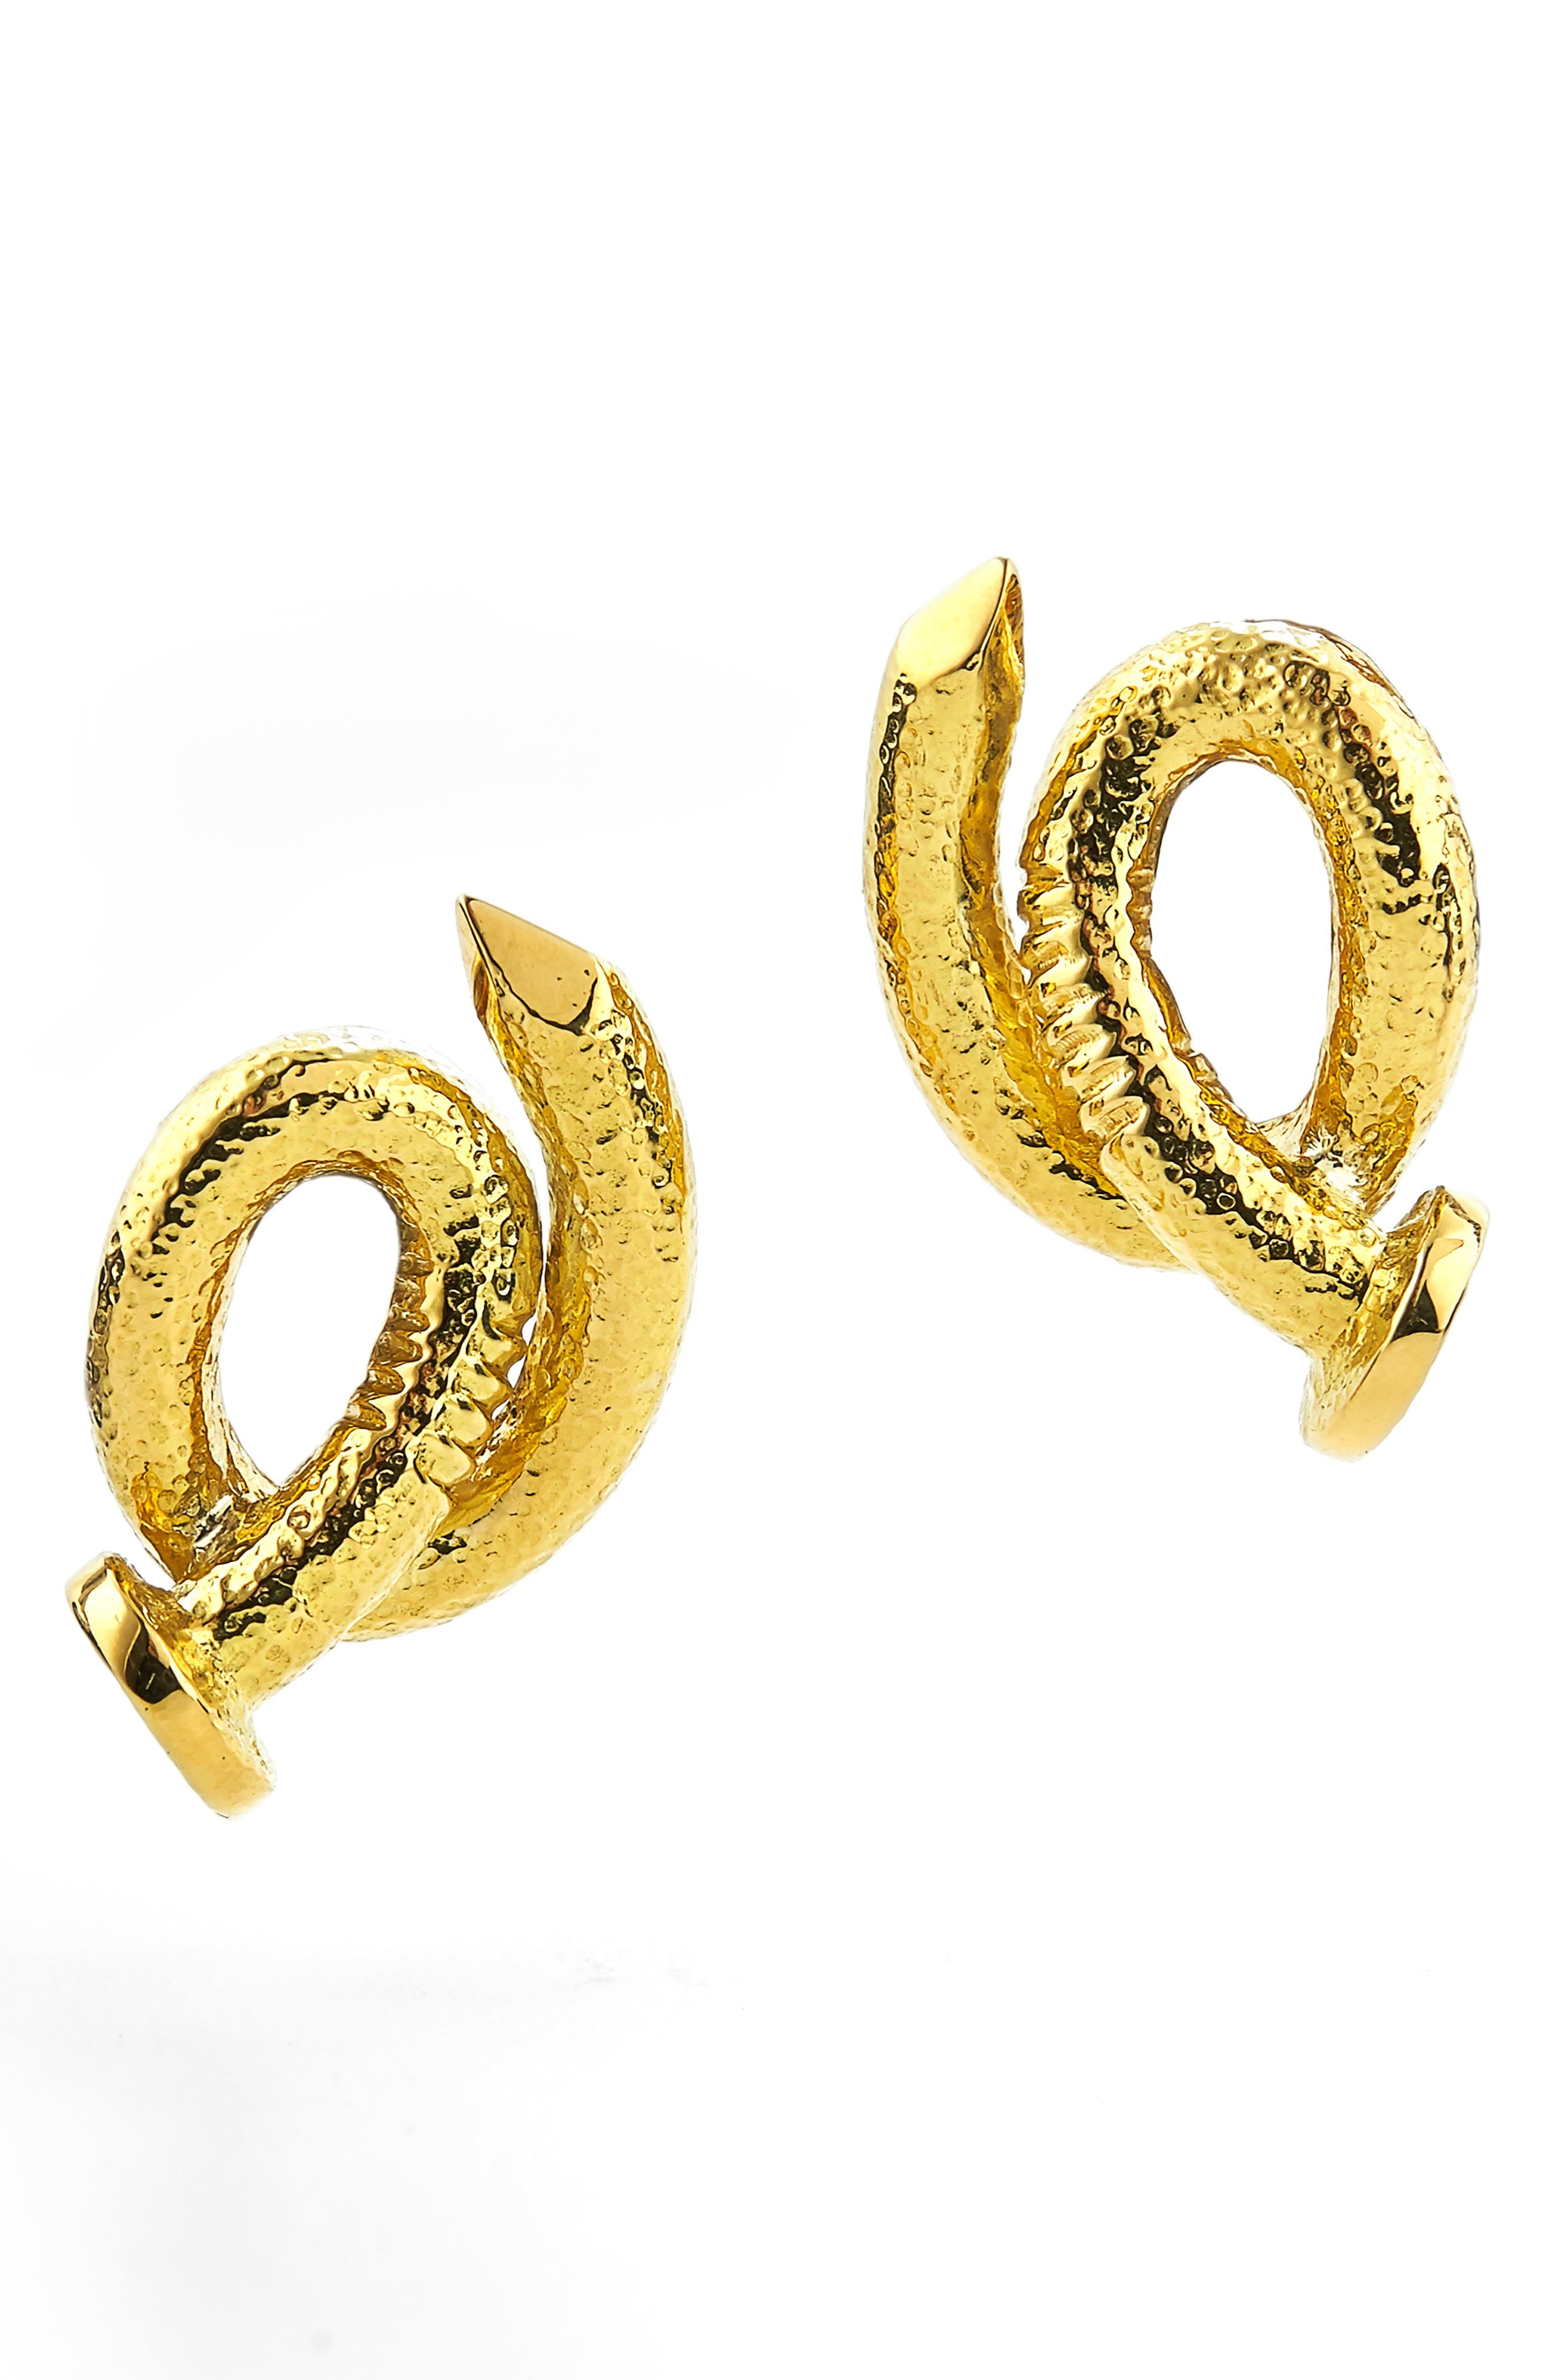 Hammered Bent Nail Stud Earrings